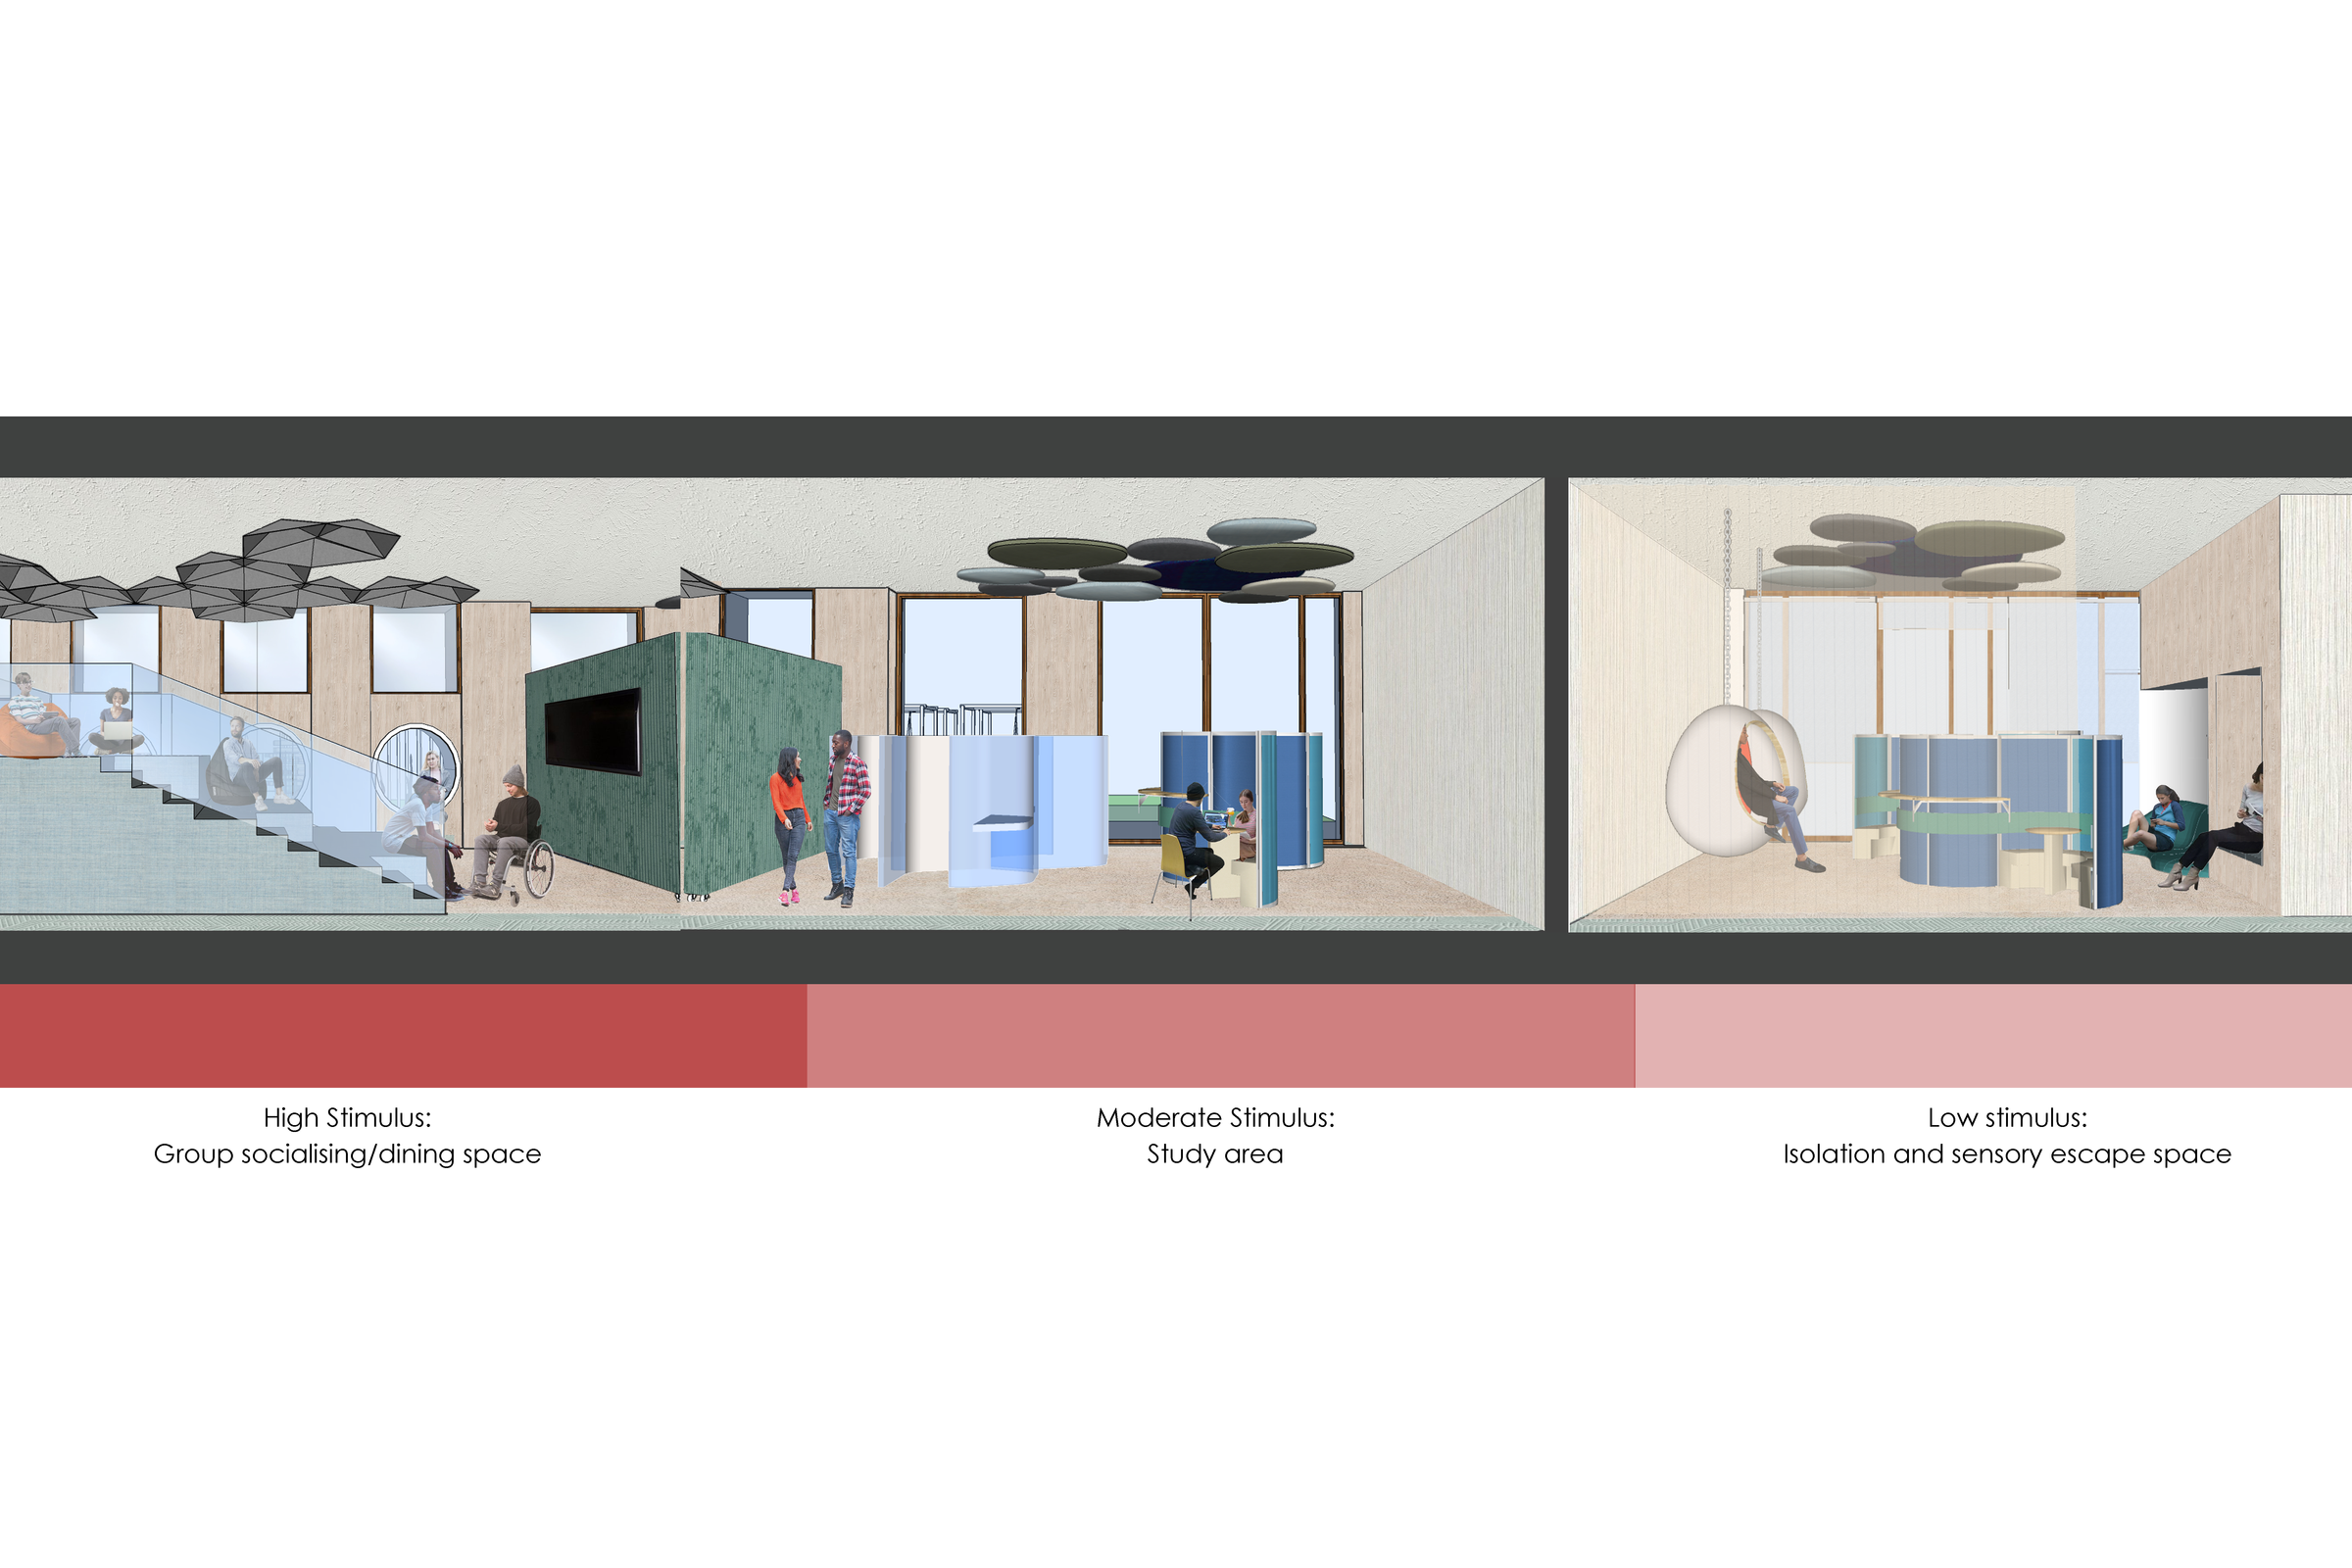 A design image of the internal spaces of the Advance school for developing skills of special needs children. The internal spaces show a group socialising/dining space of high stimulus, a study area of moderate stimulus and an isolation and sensory escape spaces of low stimulus.